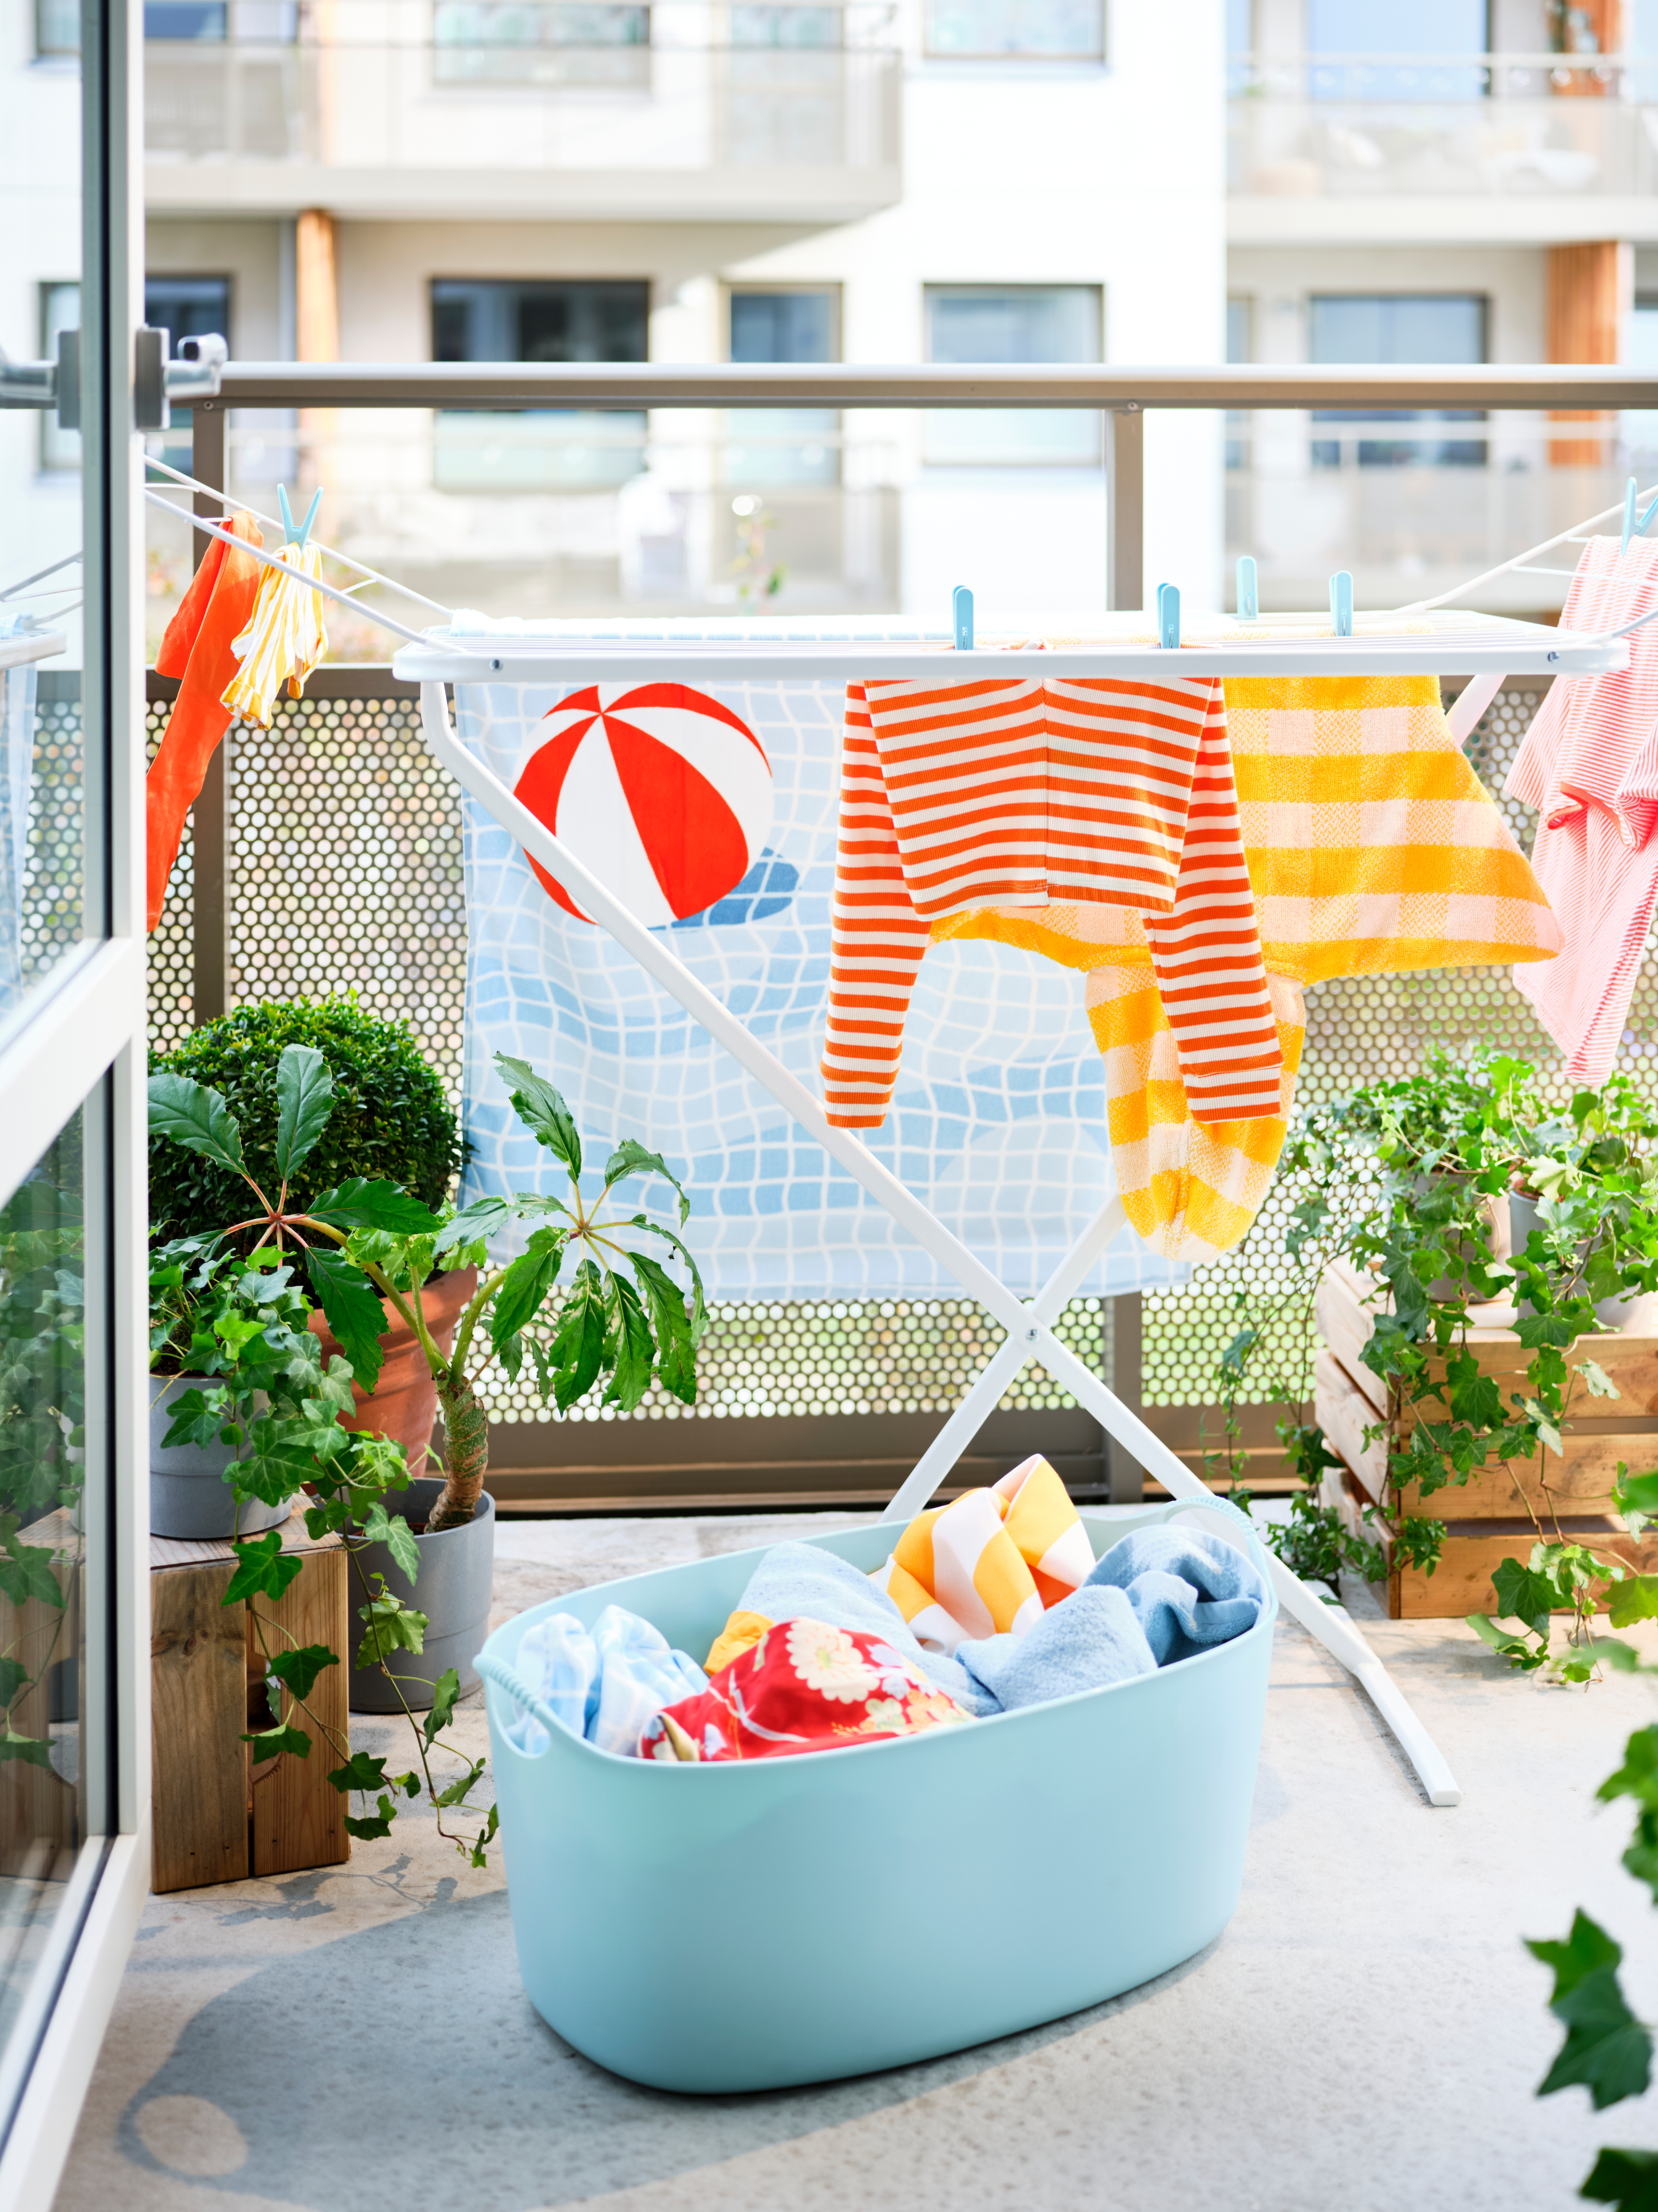 A blue TORKIS flexi laundry basket filled with laundry and a MULIG drying rack on a sunny balcony decorated with plants.